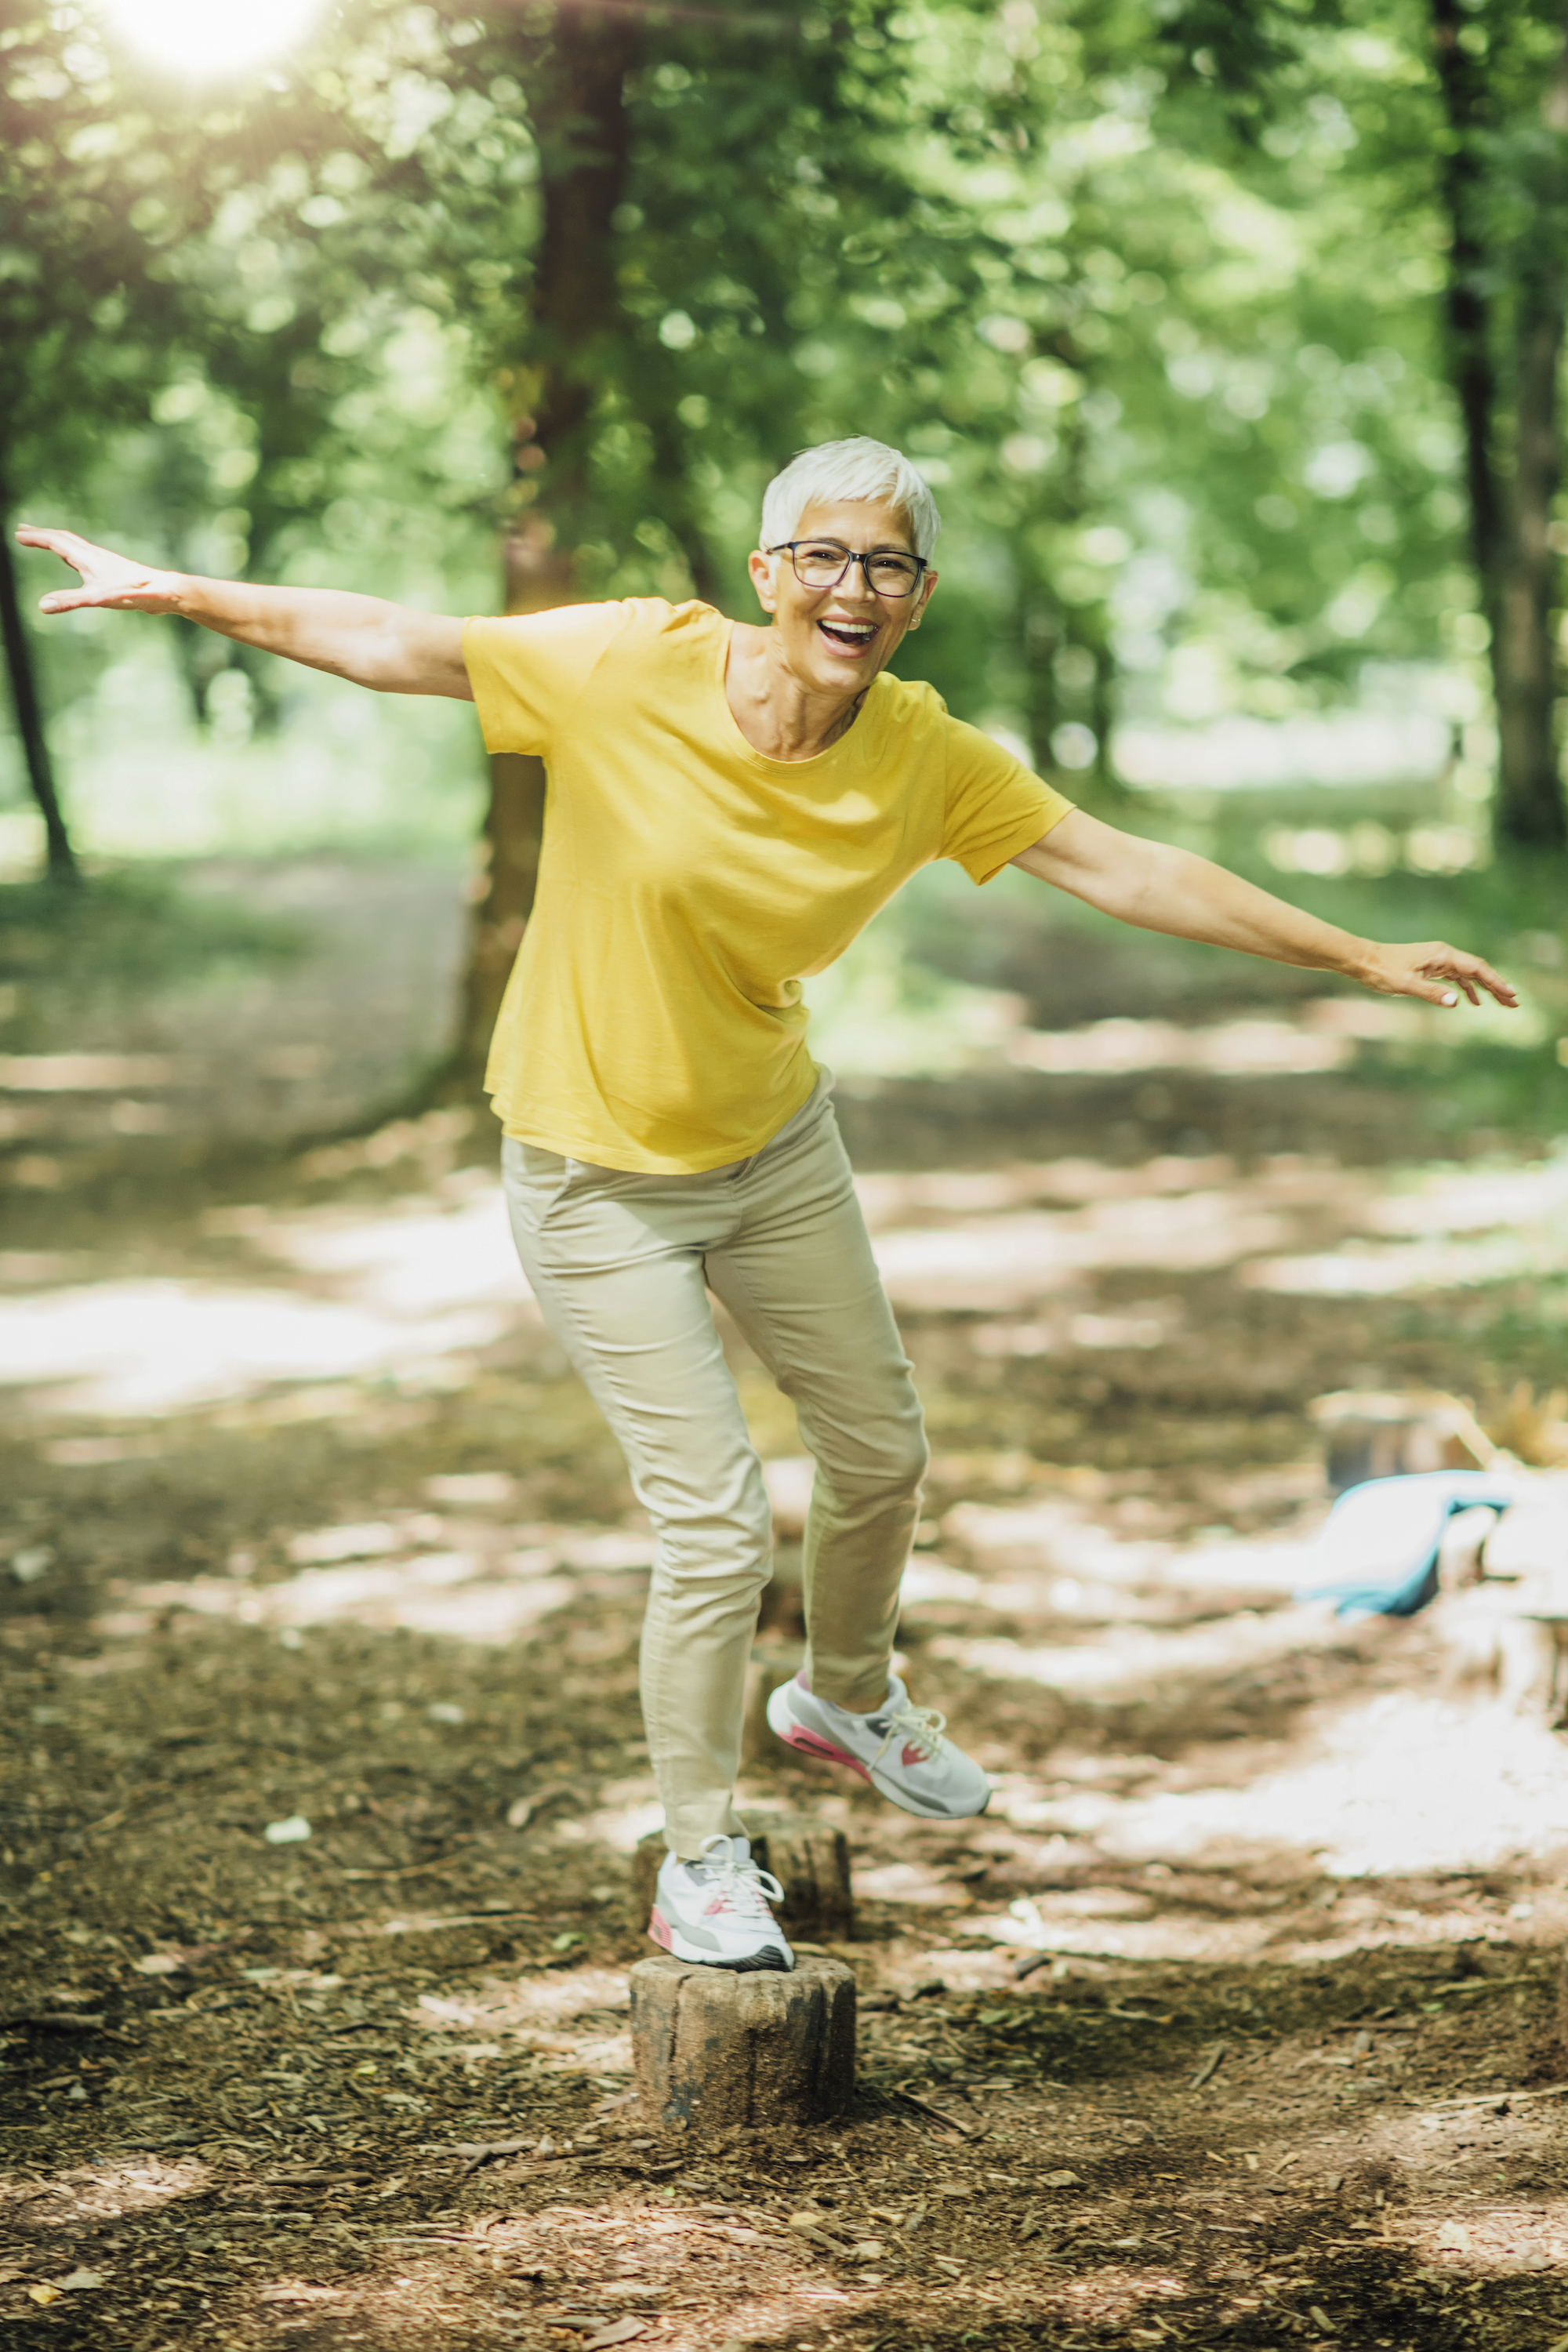 Mid aged lady balancing on tree stomps in a forest. Wearing a yellow shirt and beige pants.